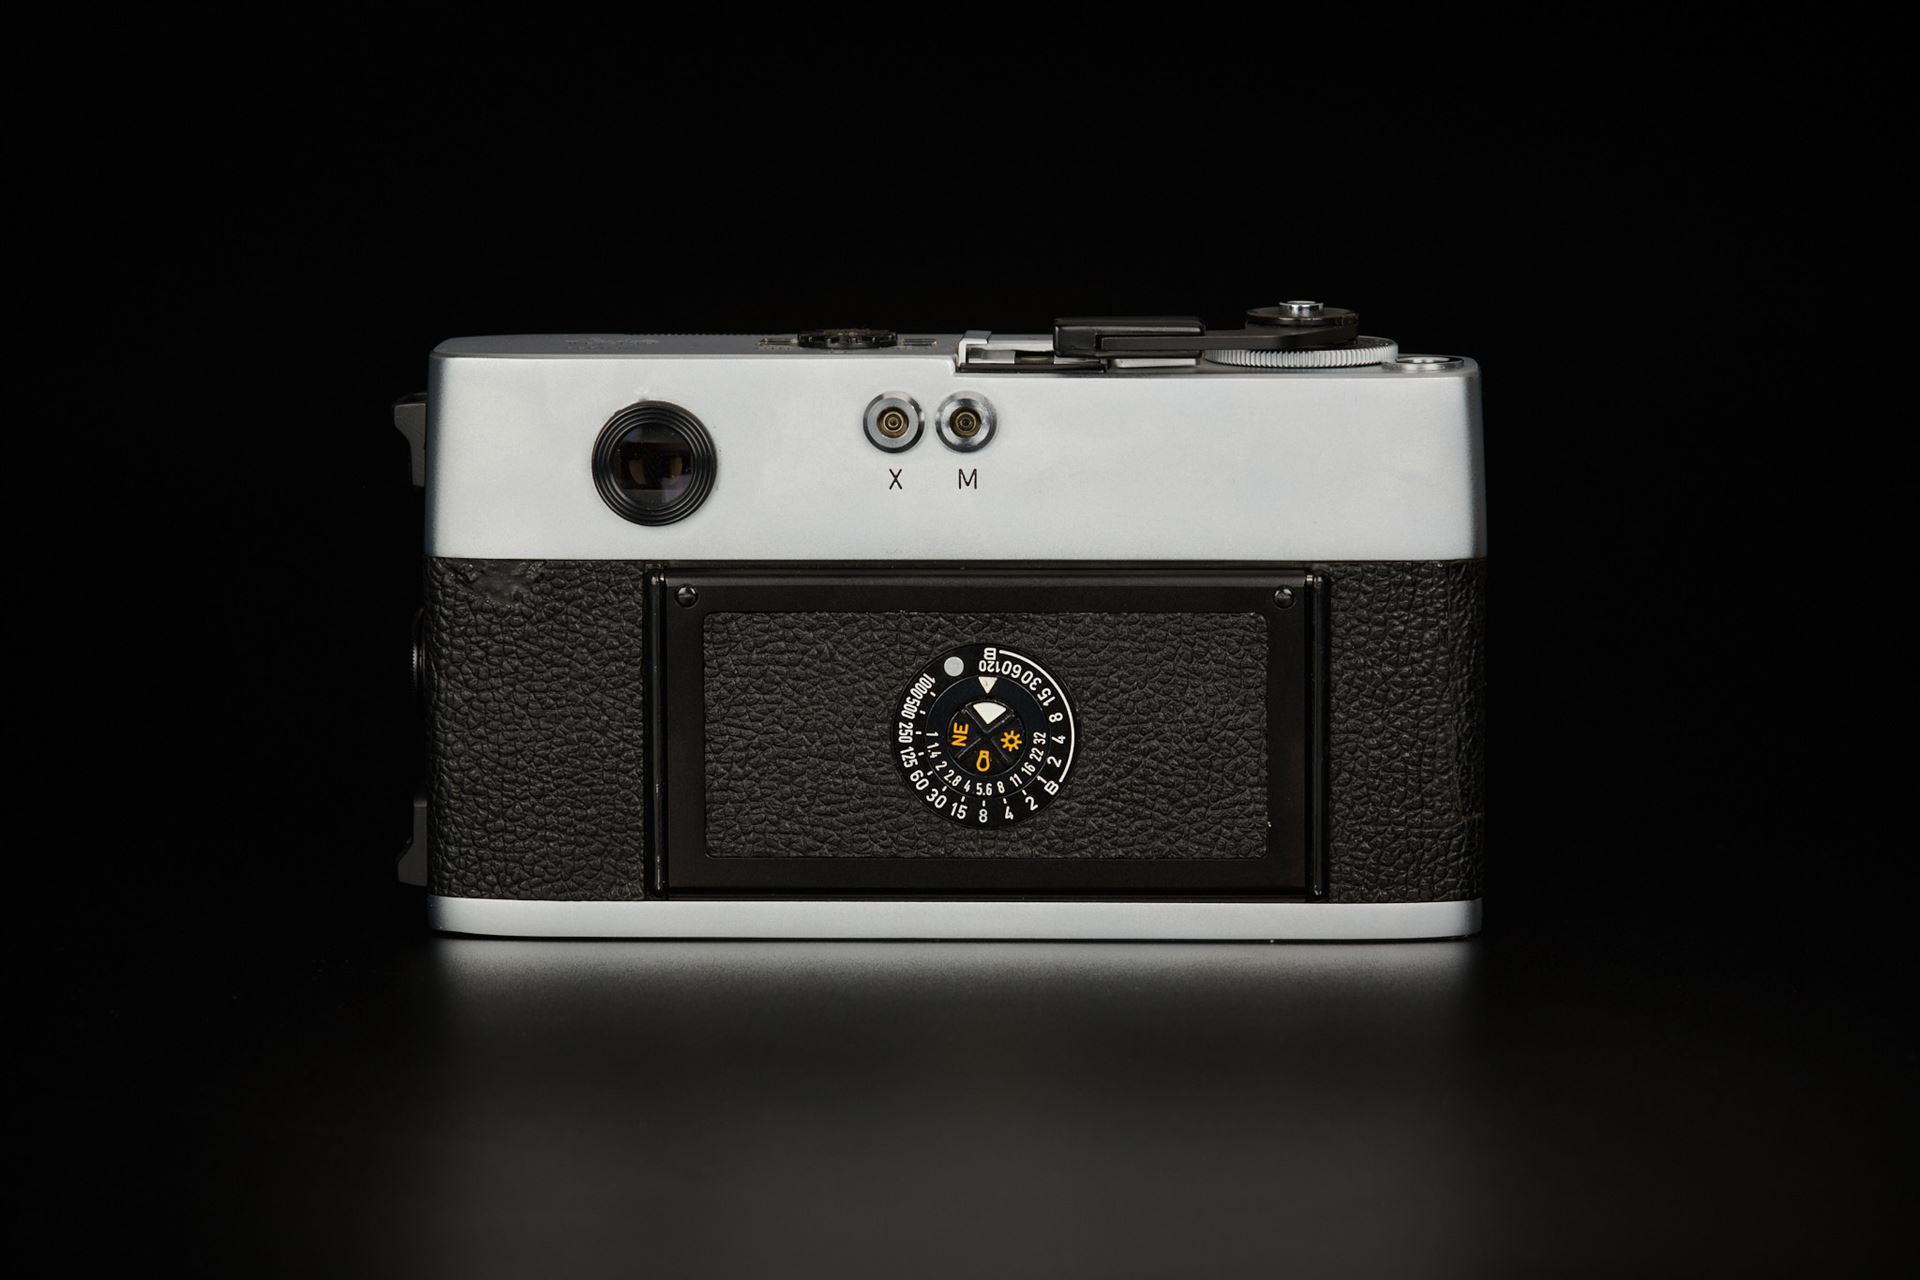 Picture of leica m5 chrome without serial number